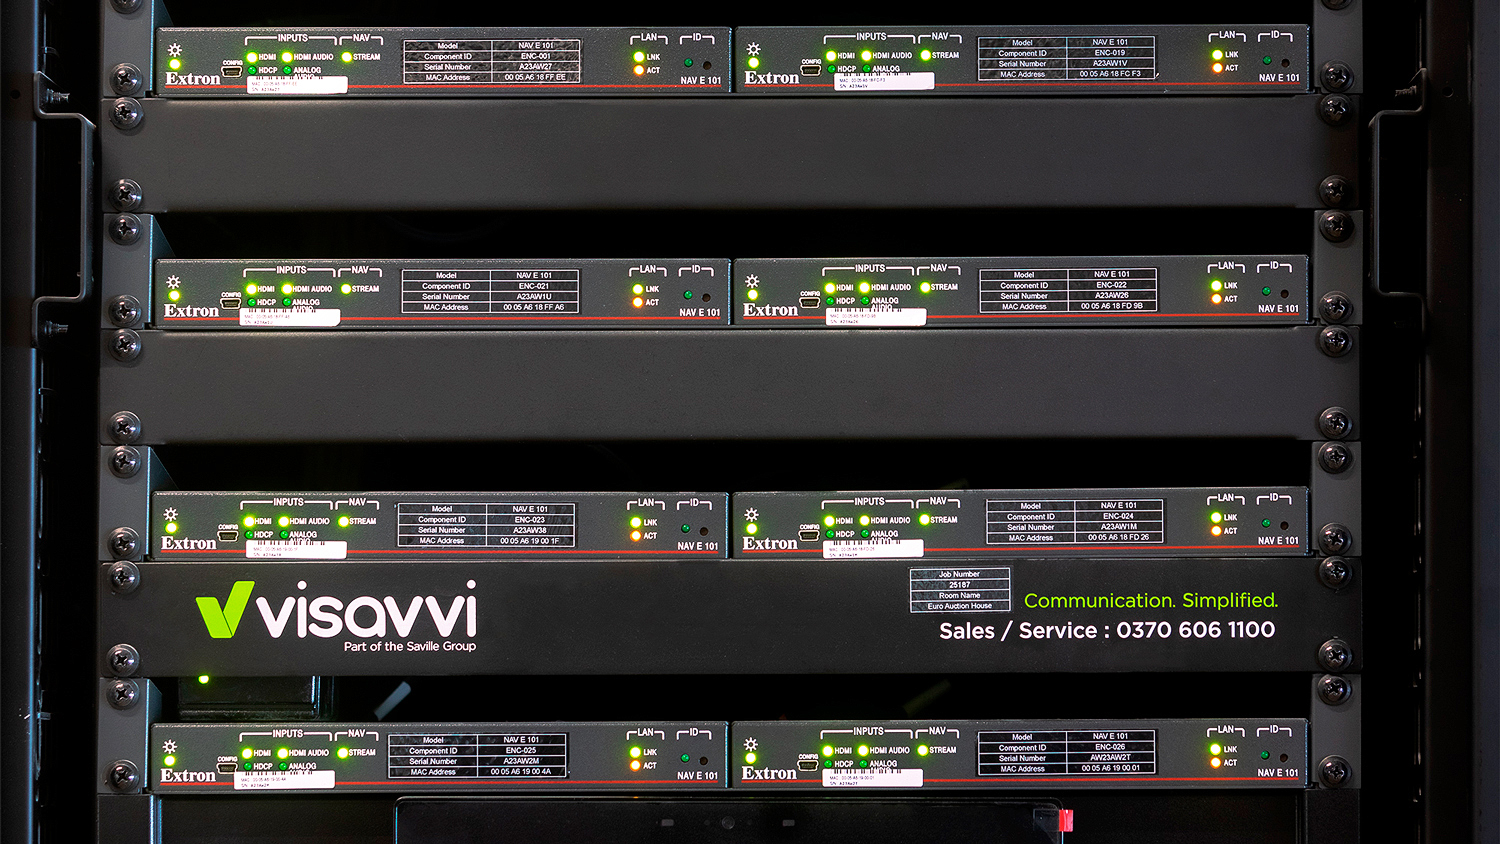 Eight NAV E 101 Pro AV over IP Encoders